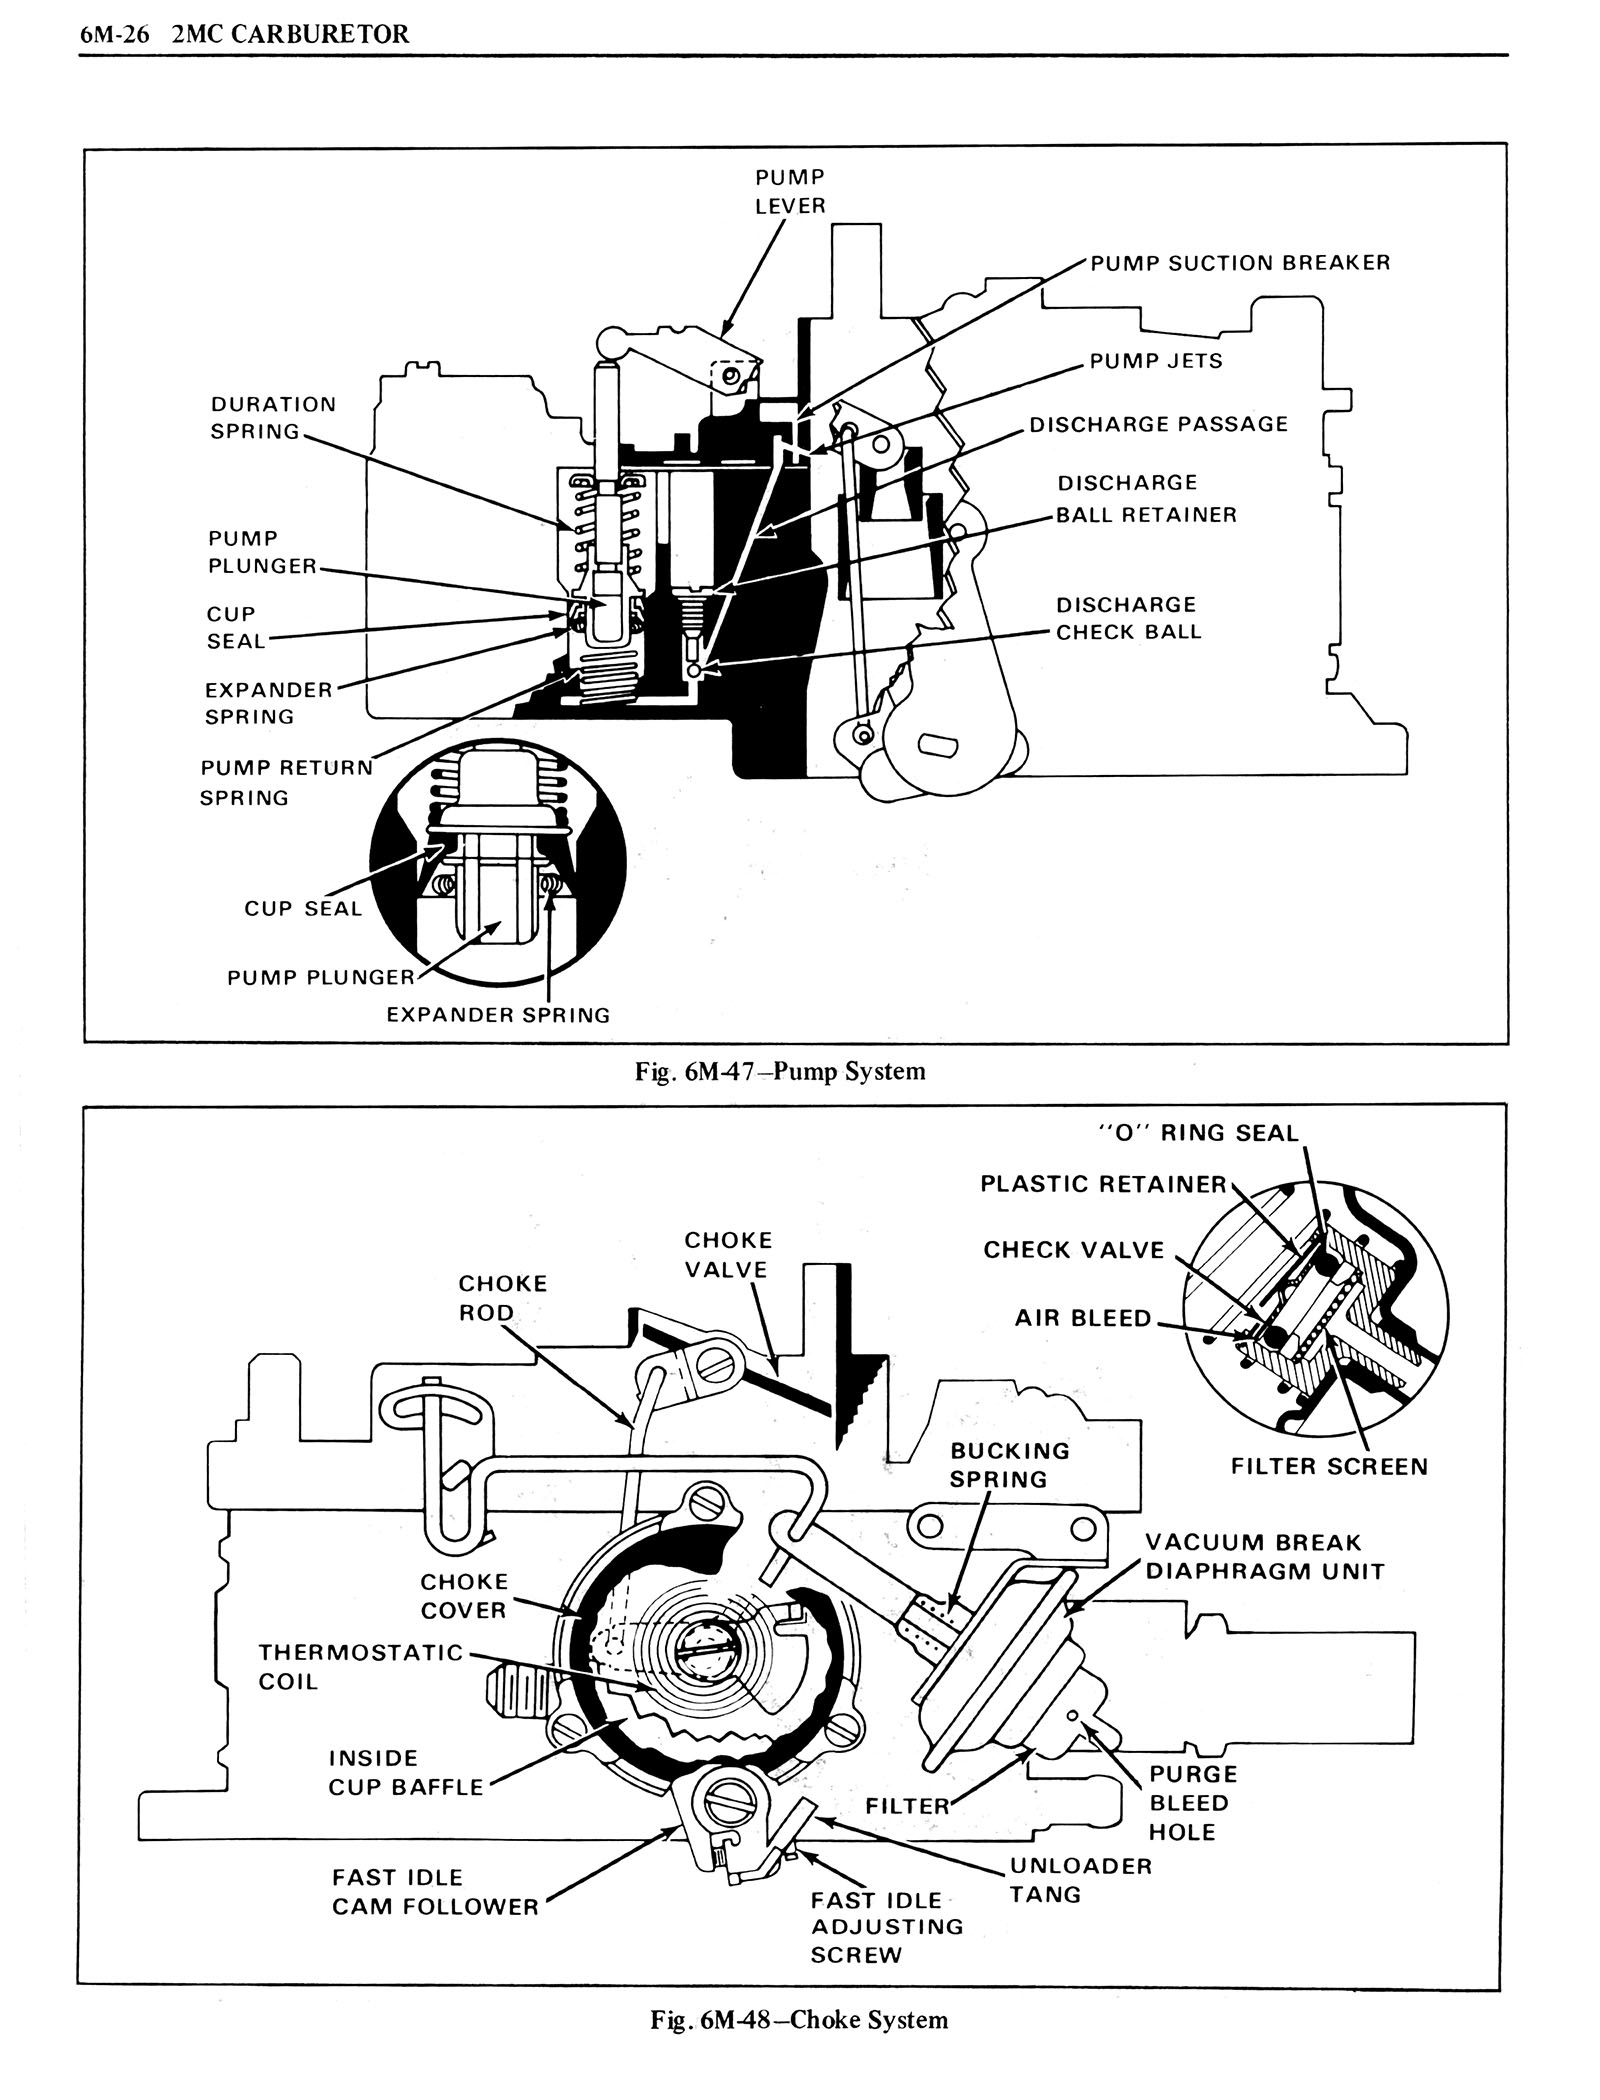 1976 Oldsmobile Service Manual page 580 of 1390